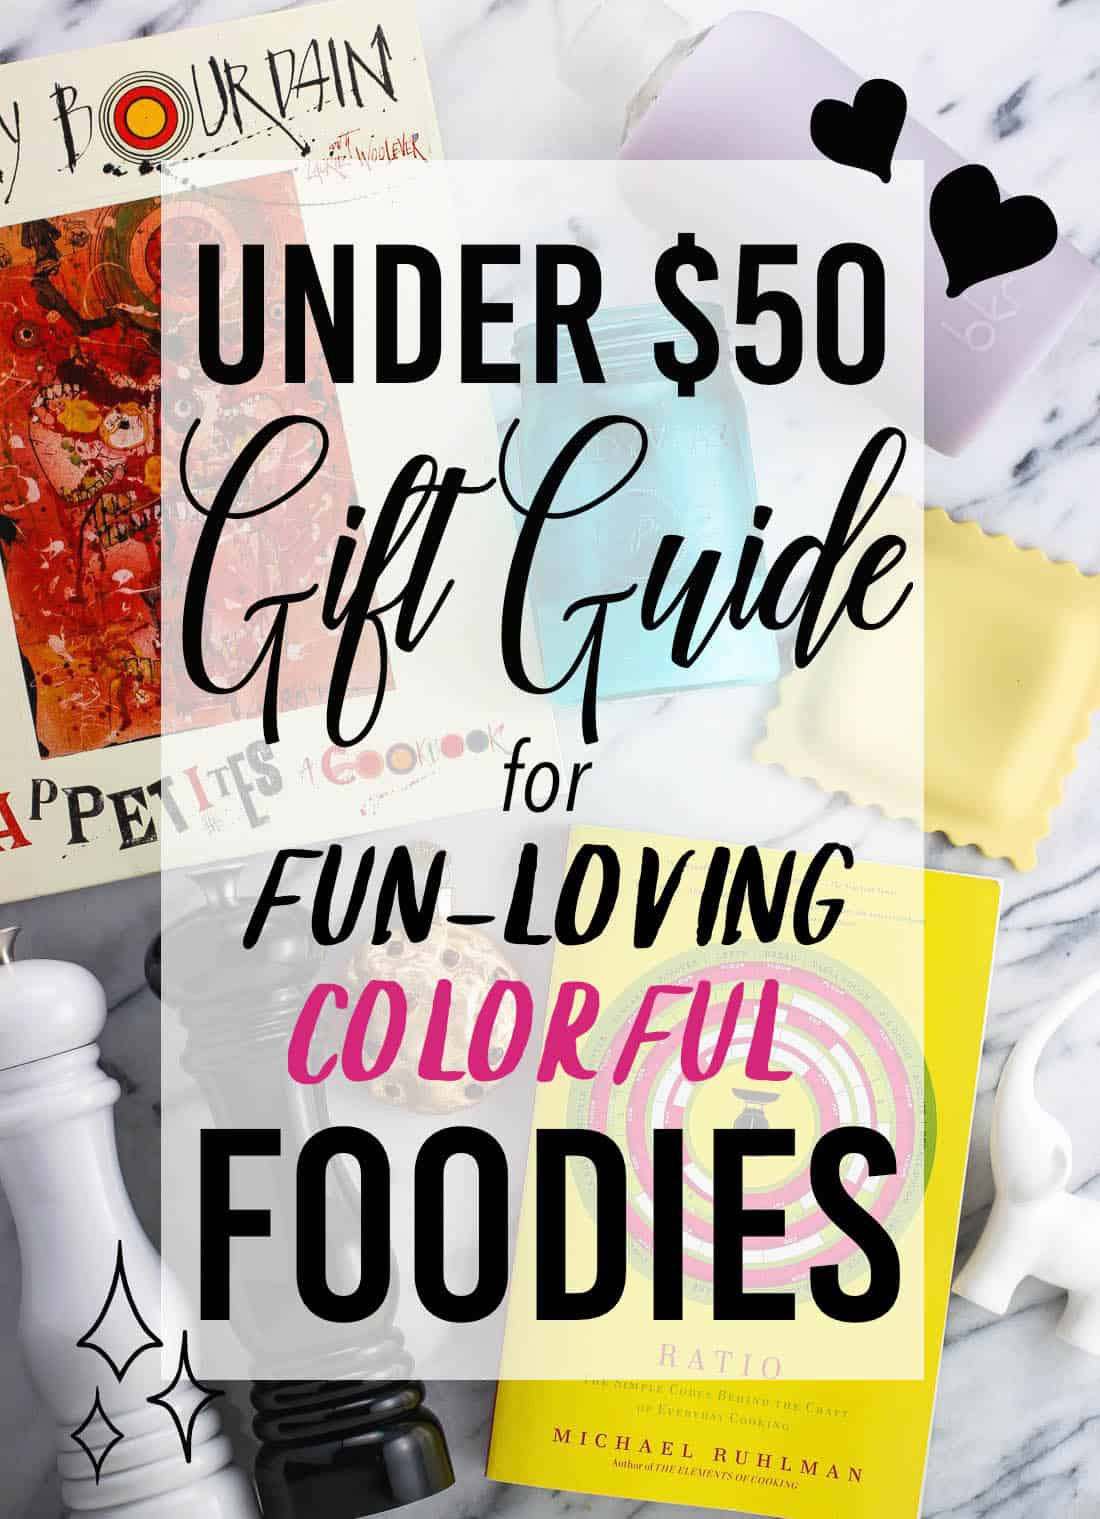 """A graphic set over various gifts reading \""""Under $50 gift guide for fun-loving colorful foodies\"""""""